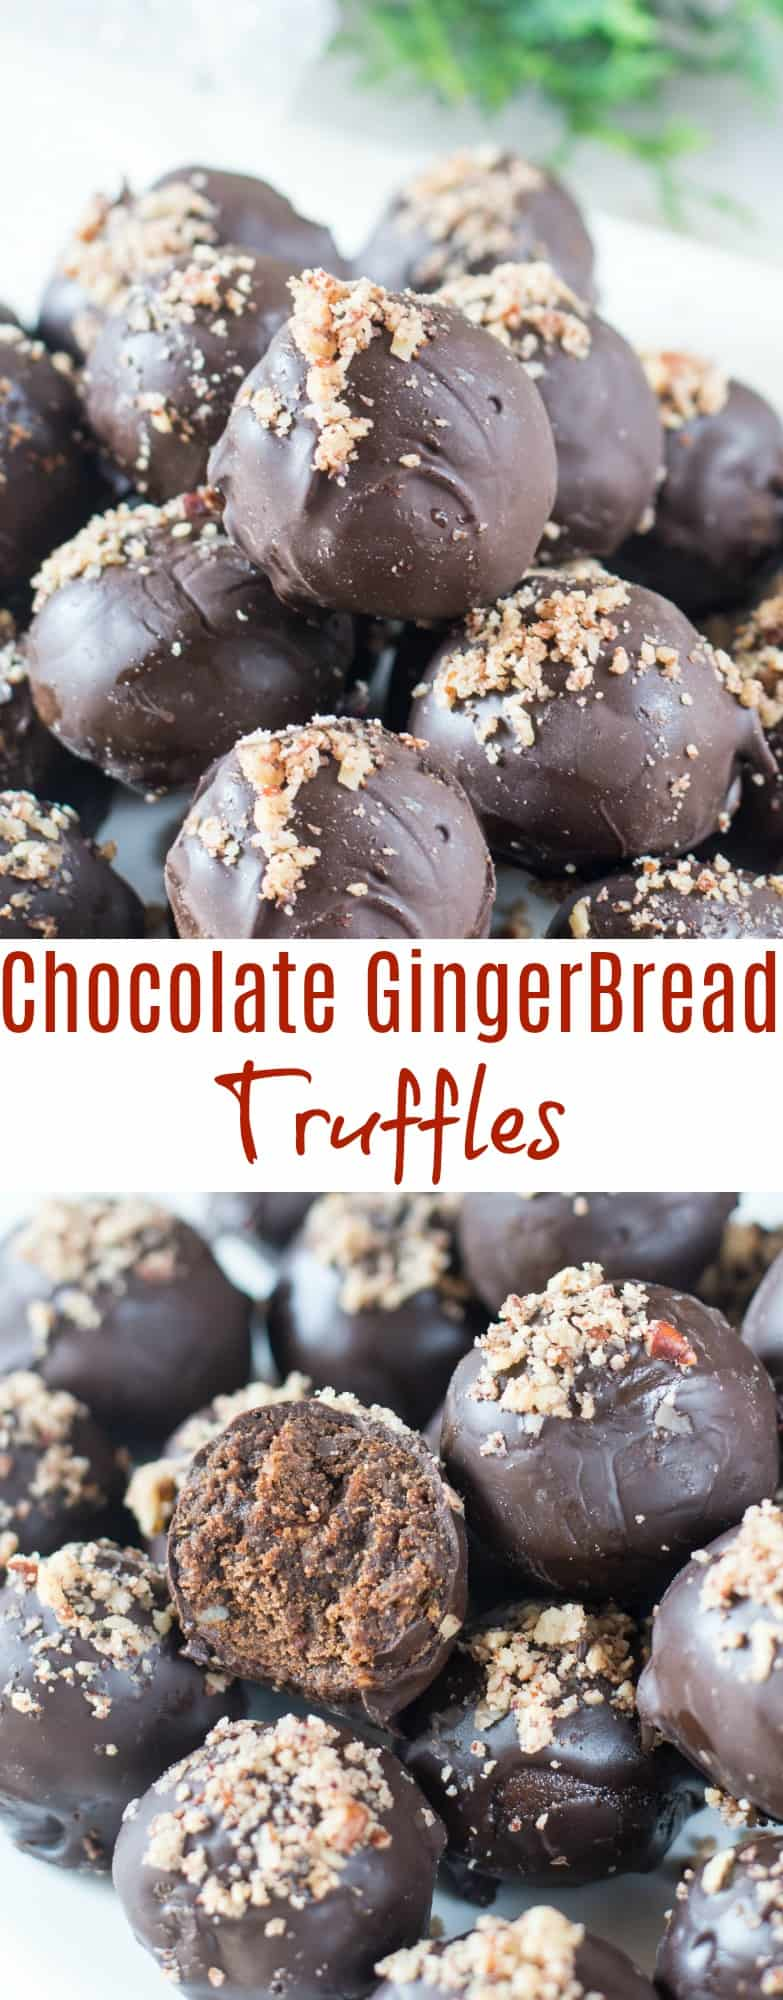 Chocolate Gingerbread Truffle